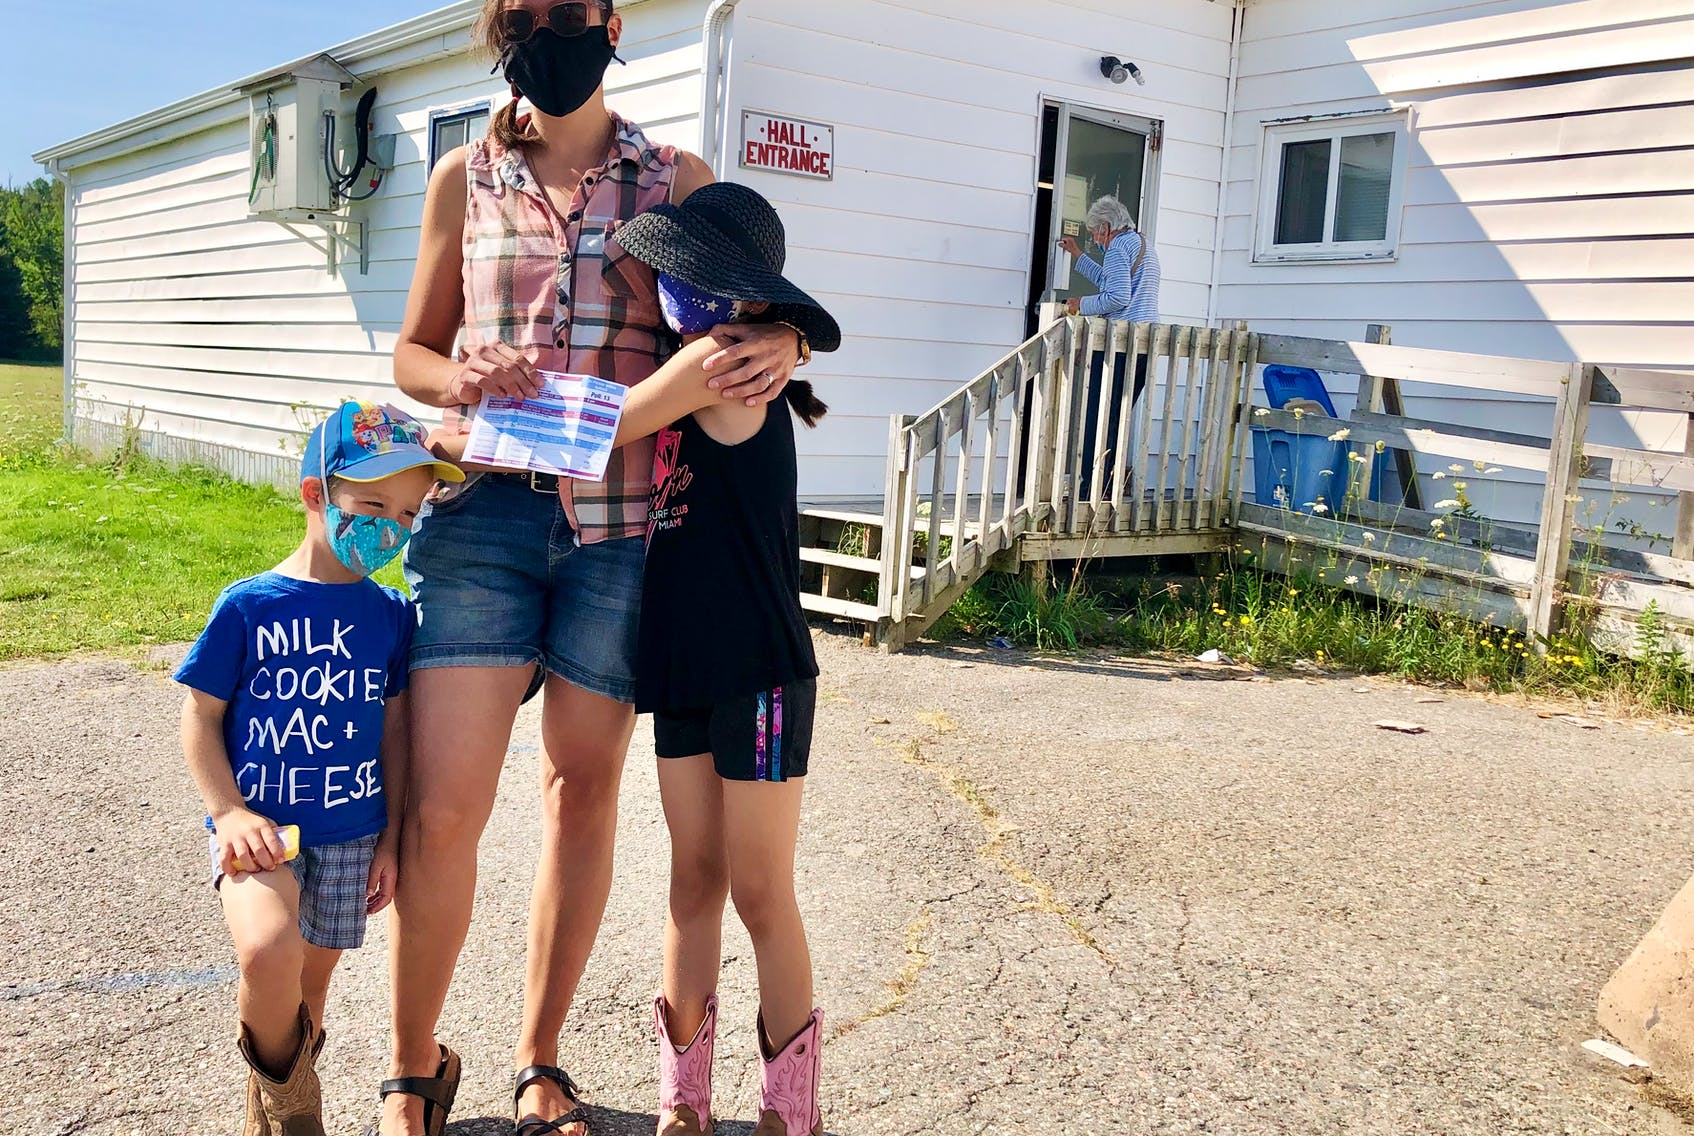 Alison Lewis, centre, with her children three-year-old Colten and seven-year-old Nora, stand outside of the voting station in Howie Centre at the Royal Canadian Legion branch 151. - Nicole Sullivan